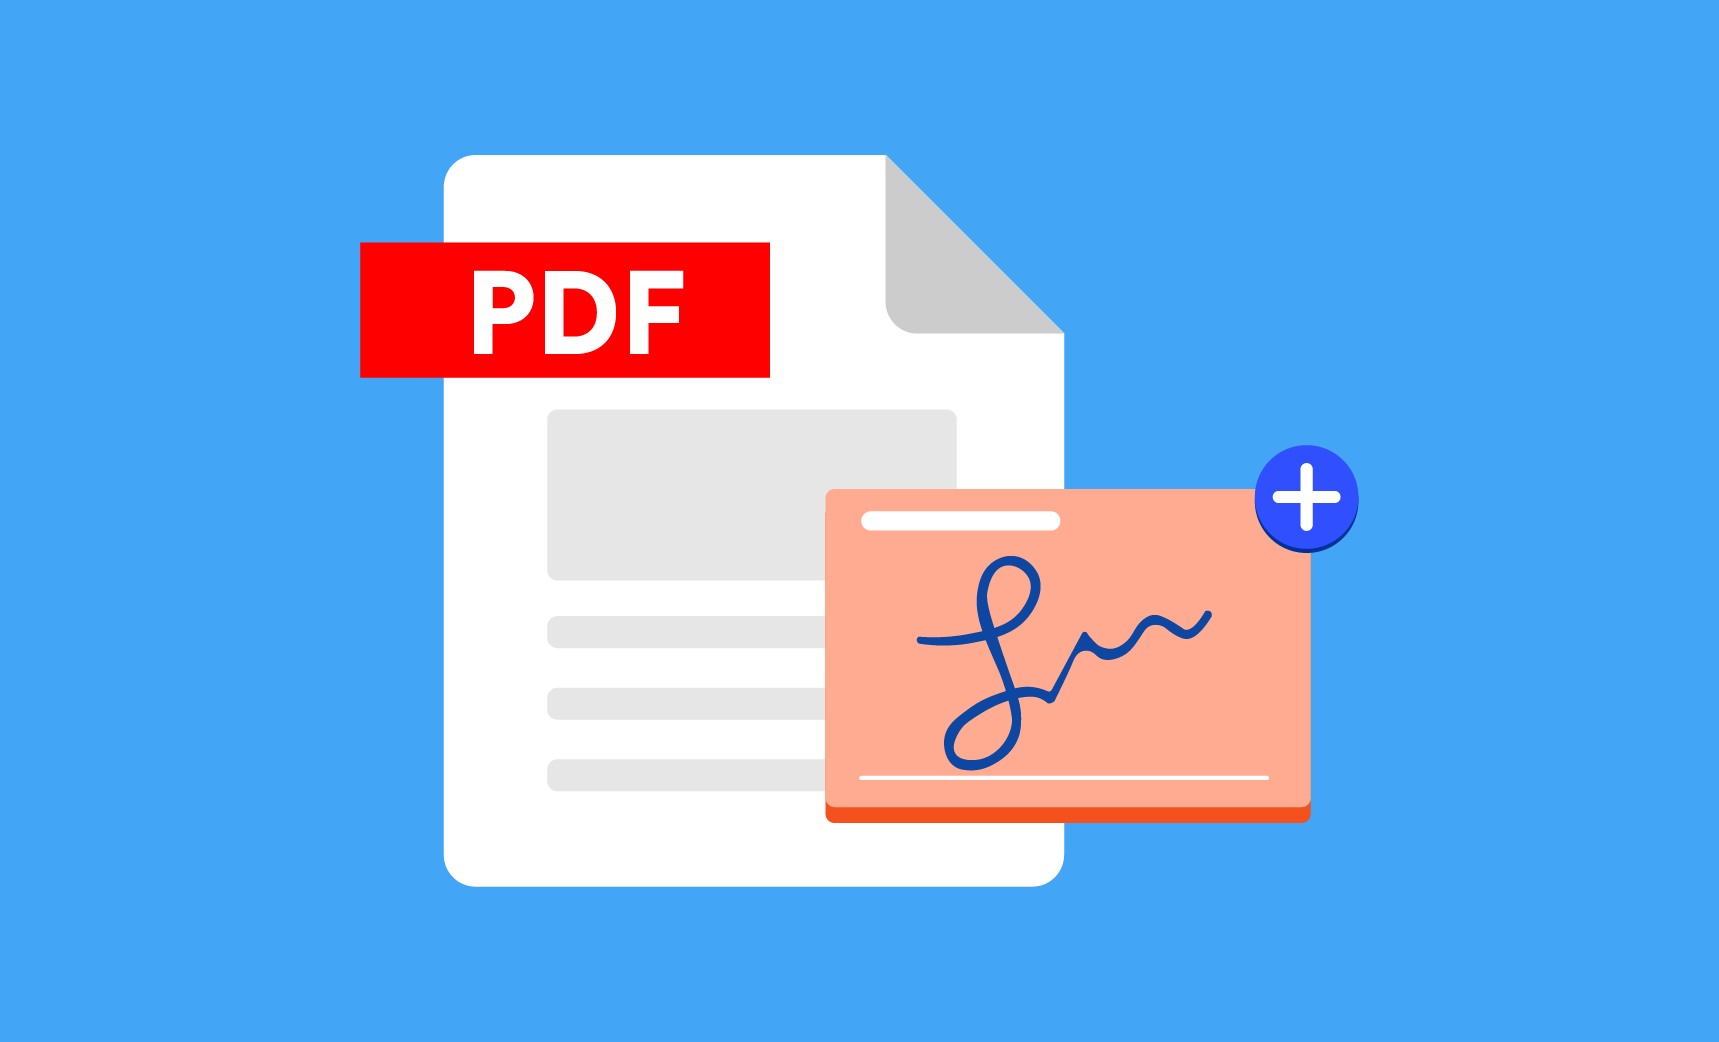 How to add a signature to a PDF